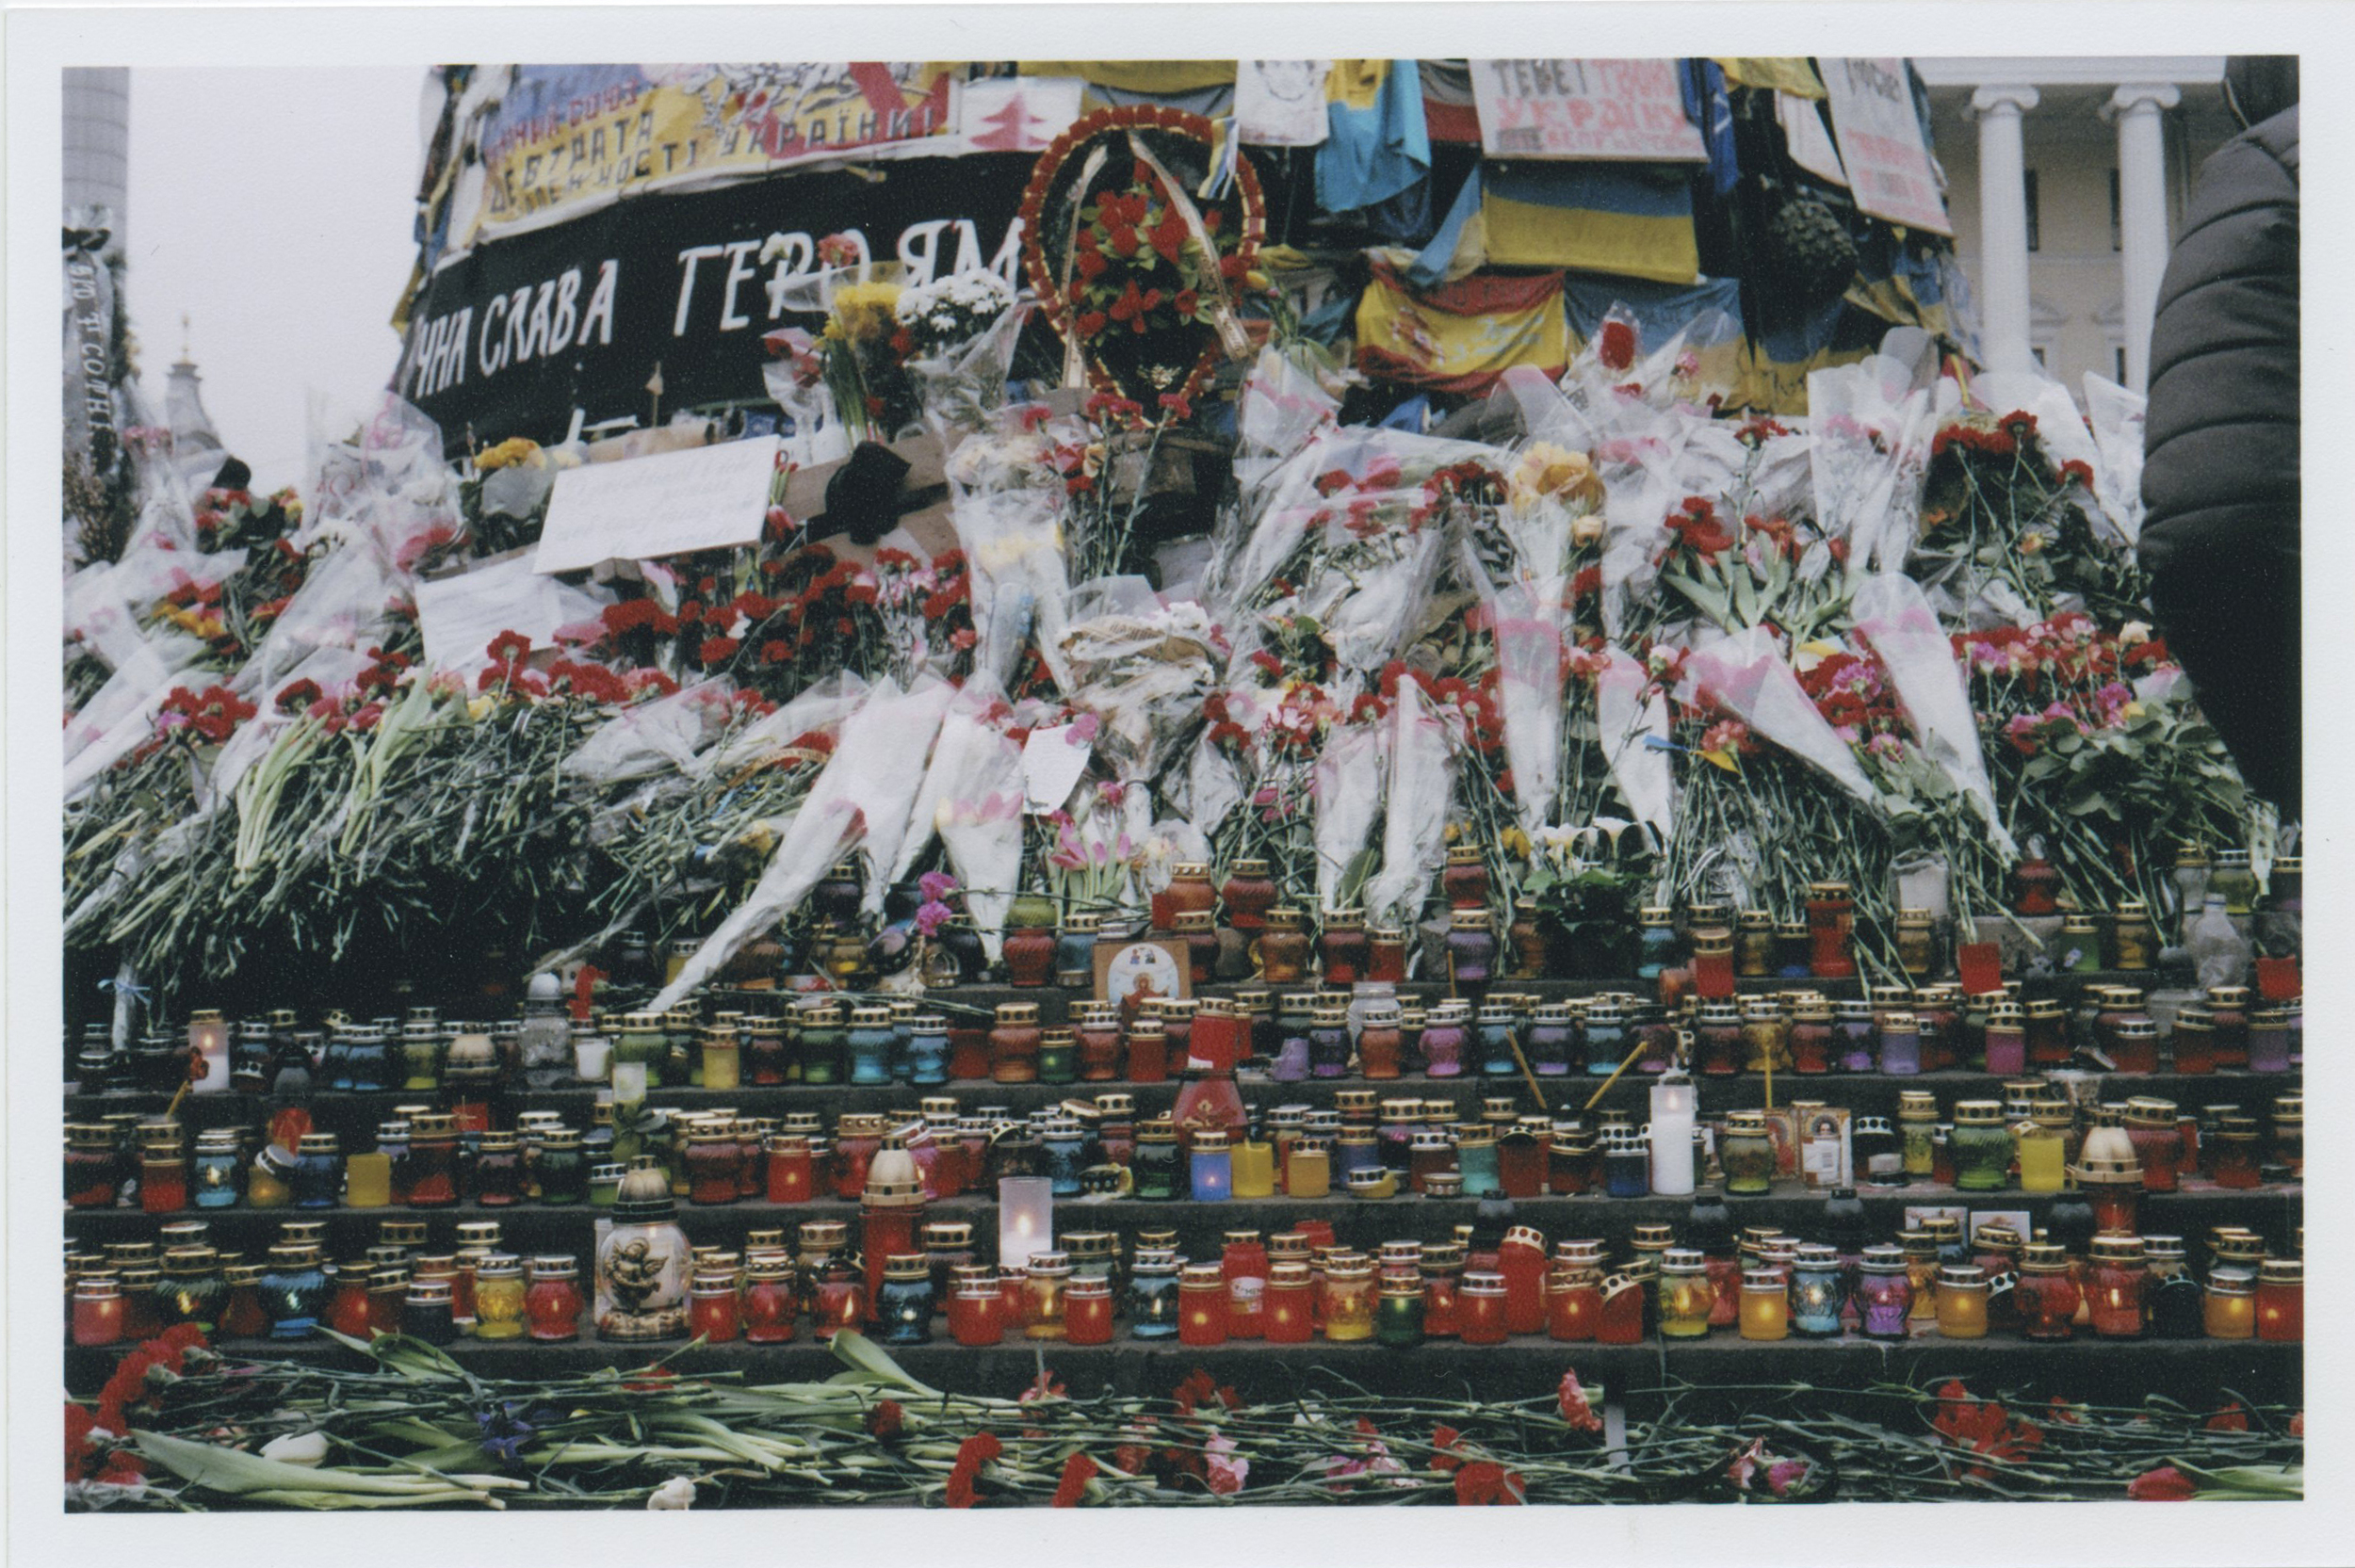 Thousands of votive candles and flowers filled Maidan. The entire city center become a giant memorial to the 103 protestors who were killed, and the 1528 who were injured. Between 150 and 500 people are still missing, and many of those people and bodies will never be recovered. It is devastating.    Photo: Michael Berlucchi